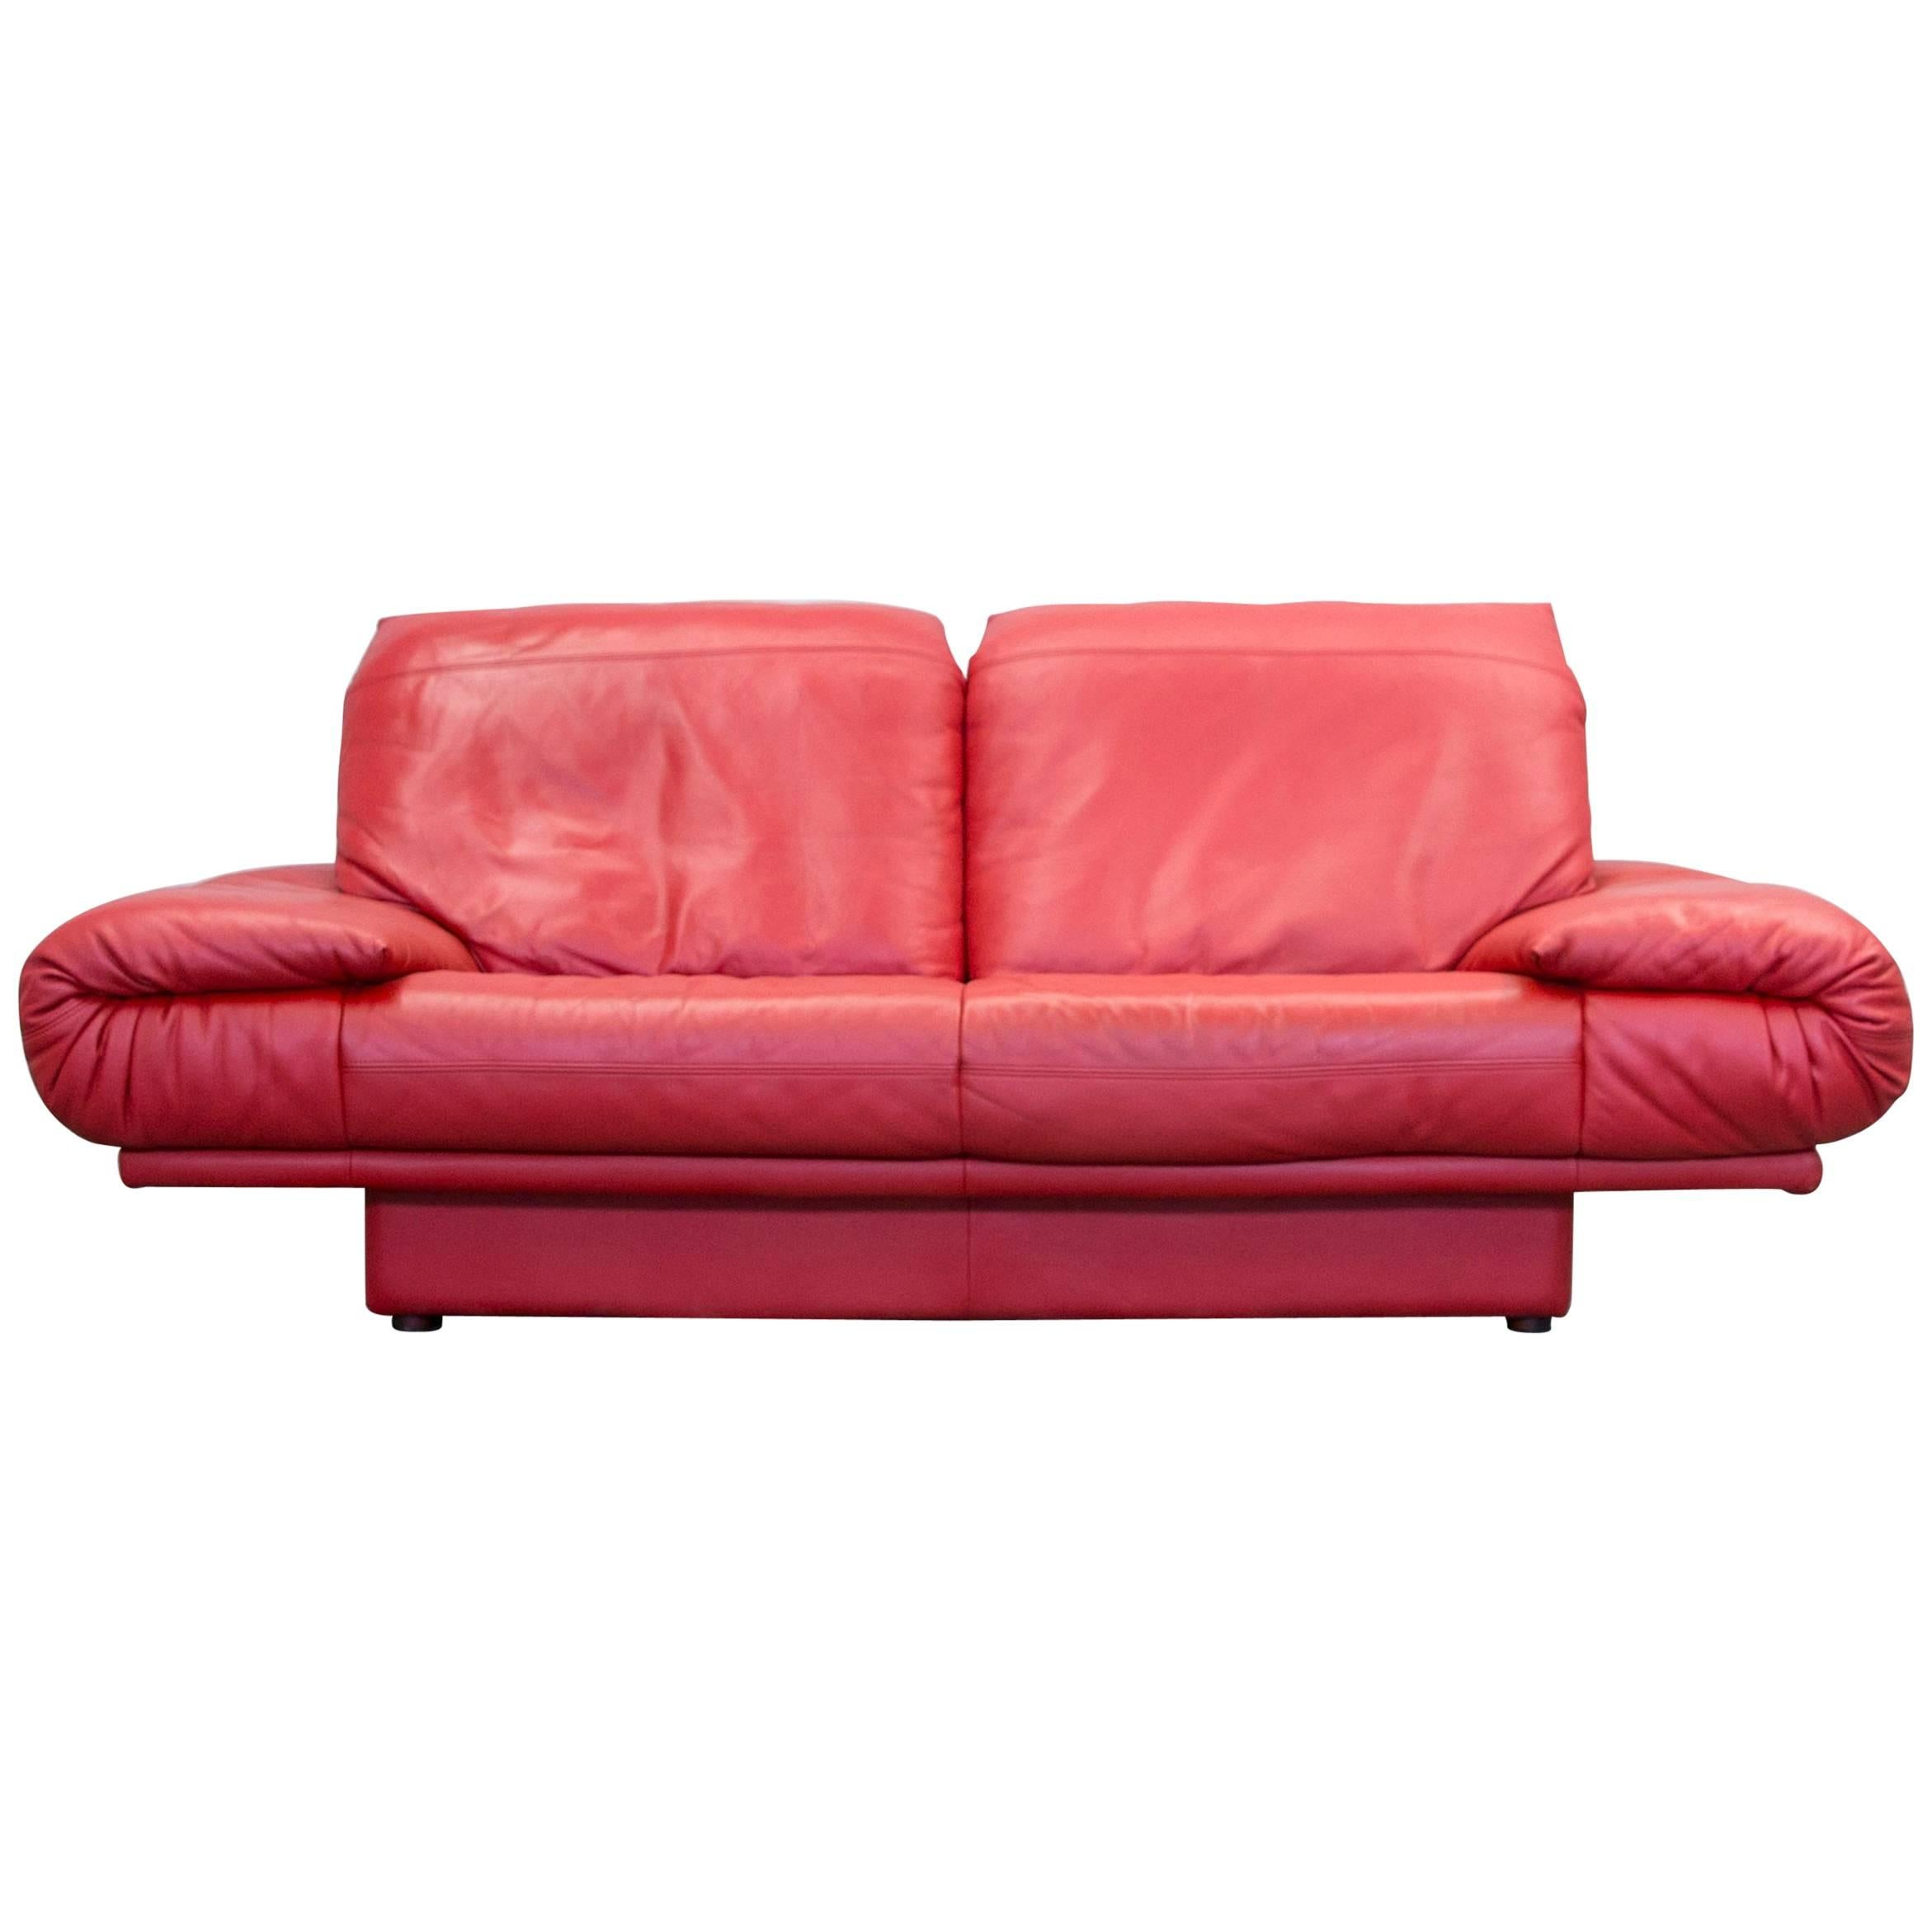 red leather two seater sofa home theater sleeper rolf benz designer seat couch modern at 1stdibs